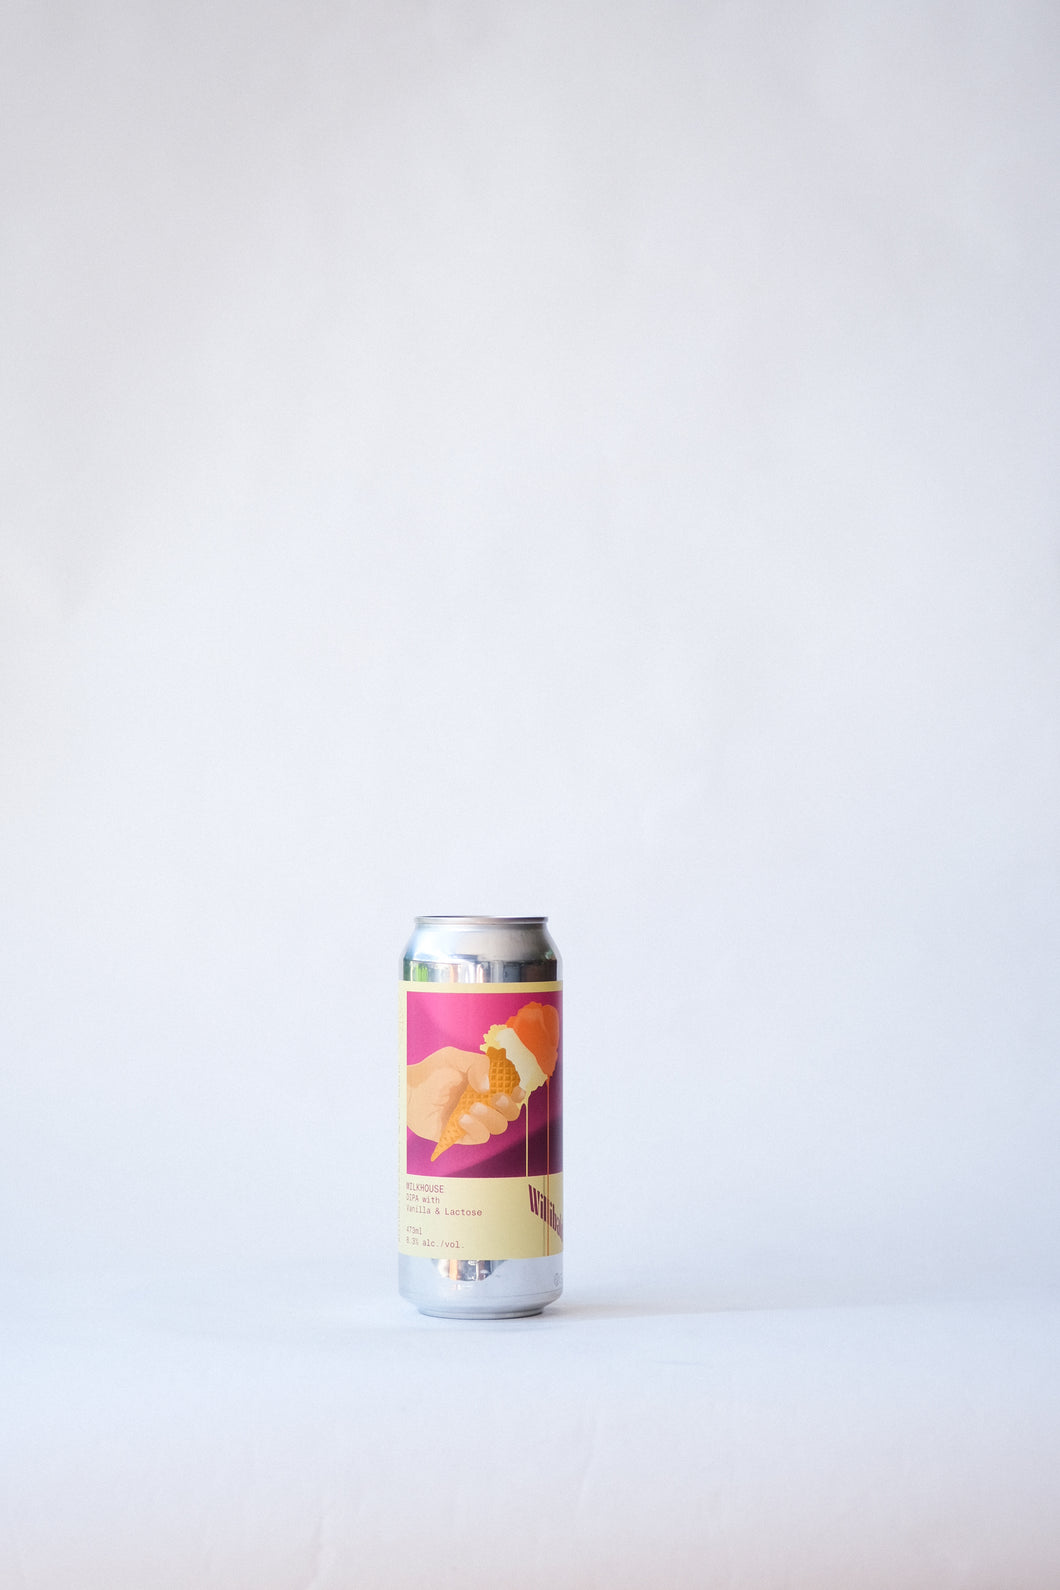 Willibald, Milkhouse DIPA